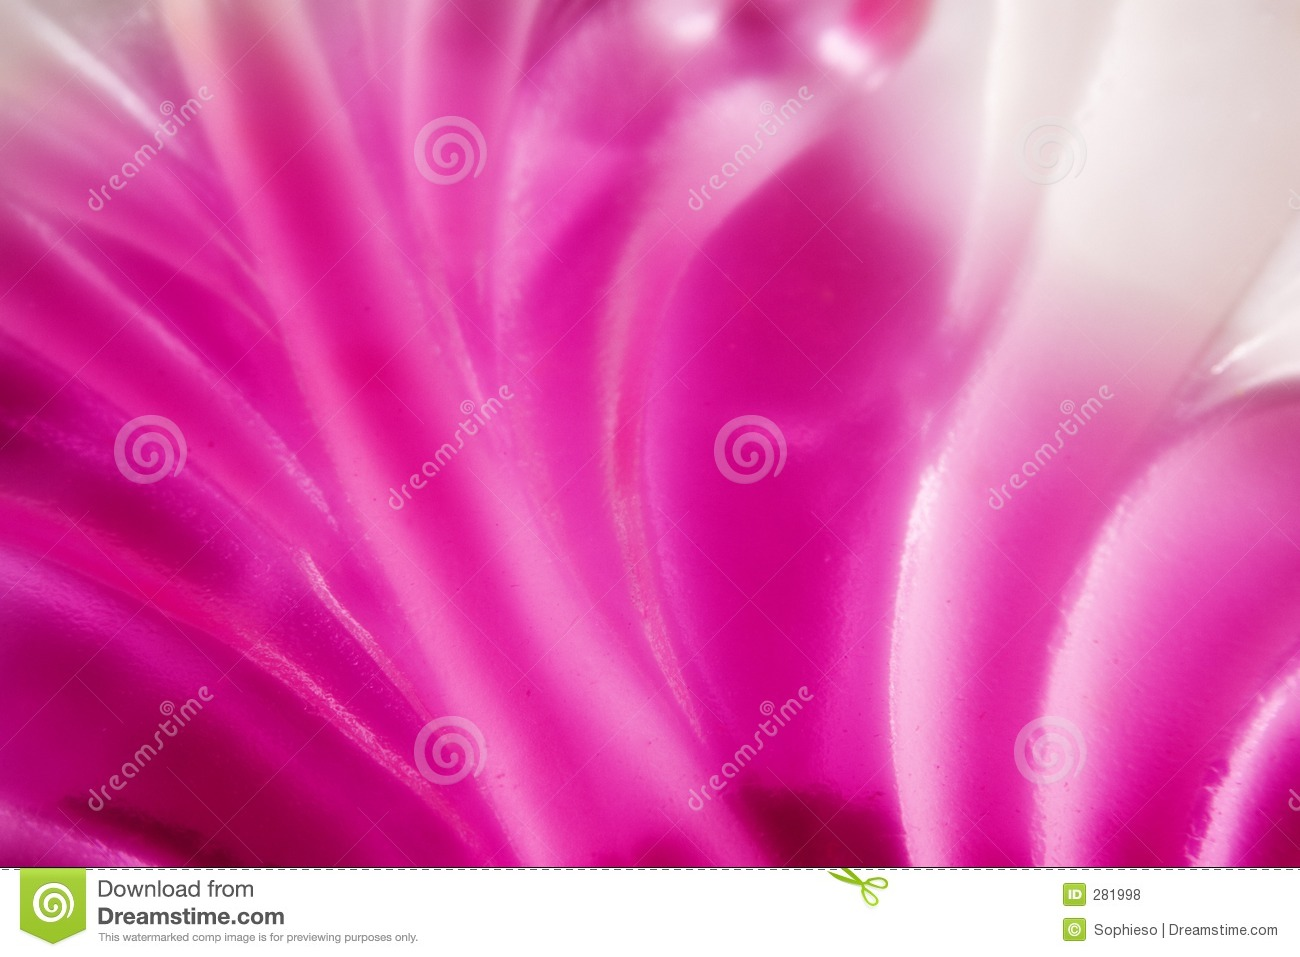 Abstracte Roze & Witte Achtergrond